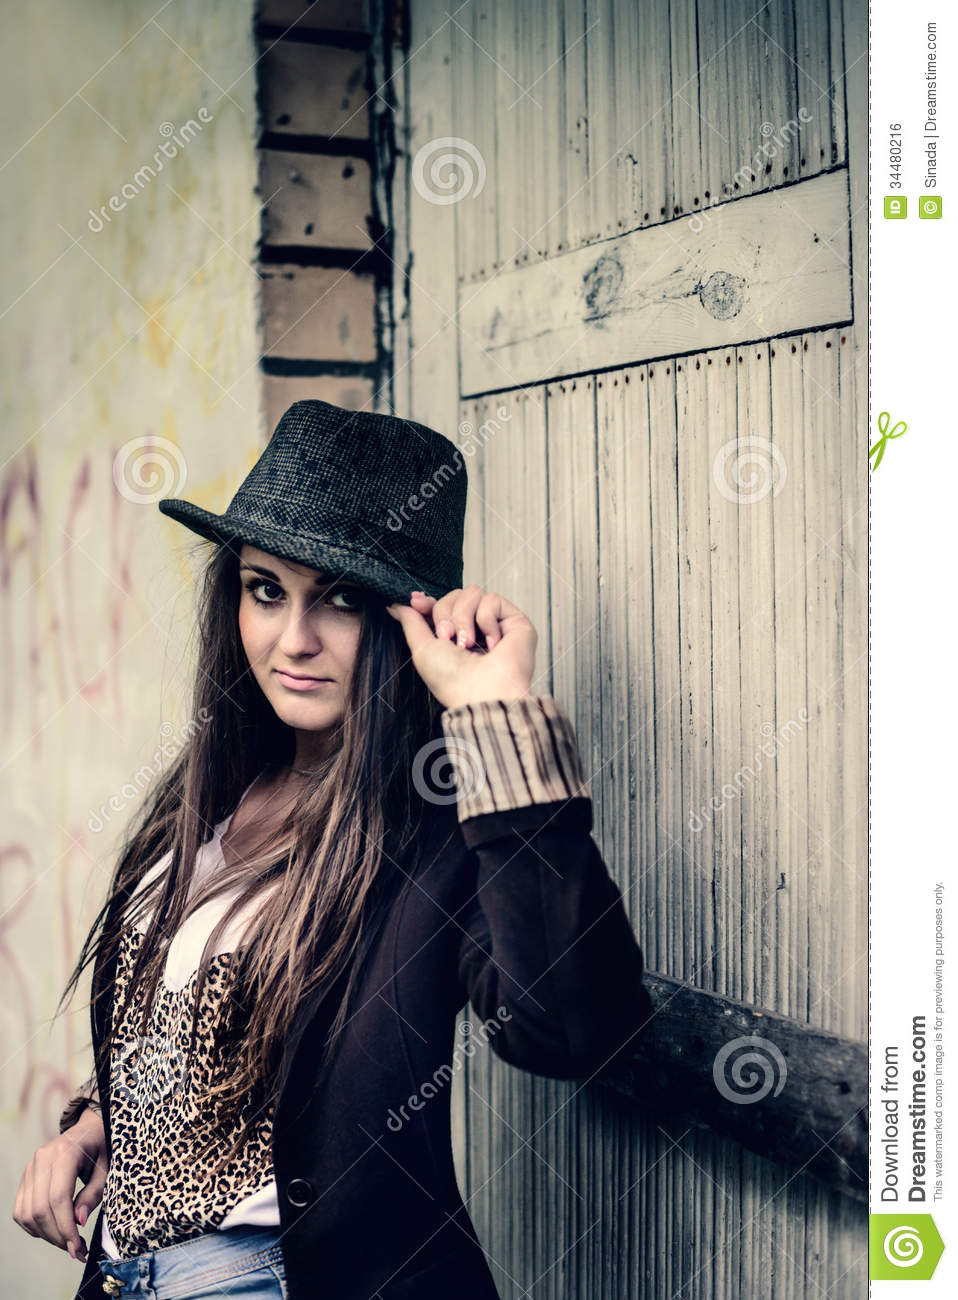 Stylish girl hipster in retro style royalty free stock image image 34480216 - Vintage style images ...